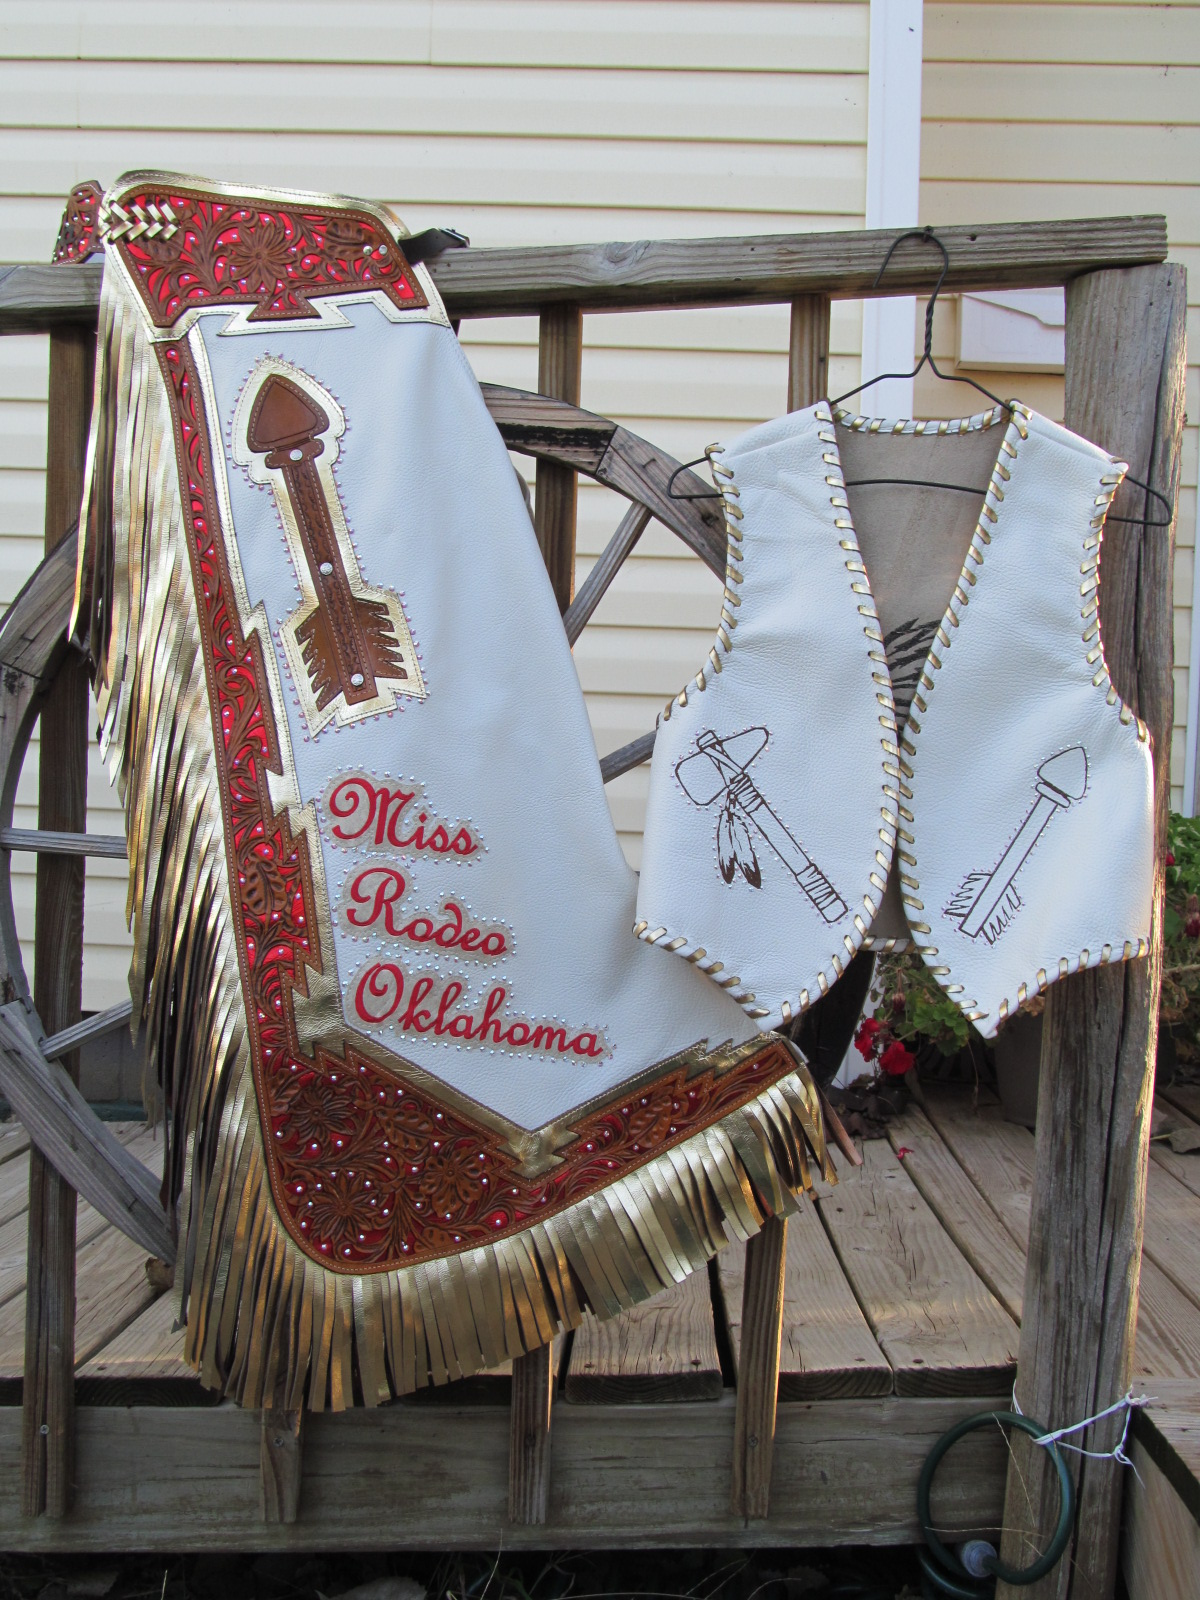 Rodeo Queen Chaps,Miss Rodeo Oklahoma Queen Chaps 2015